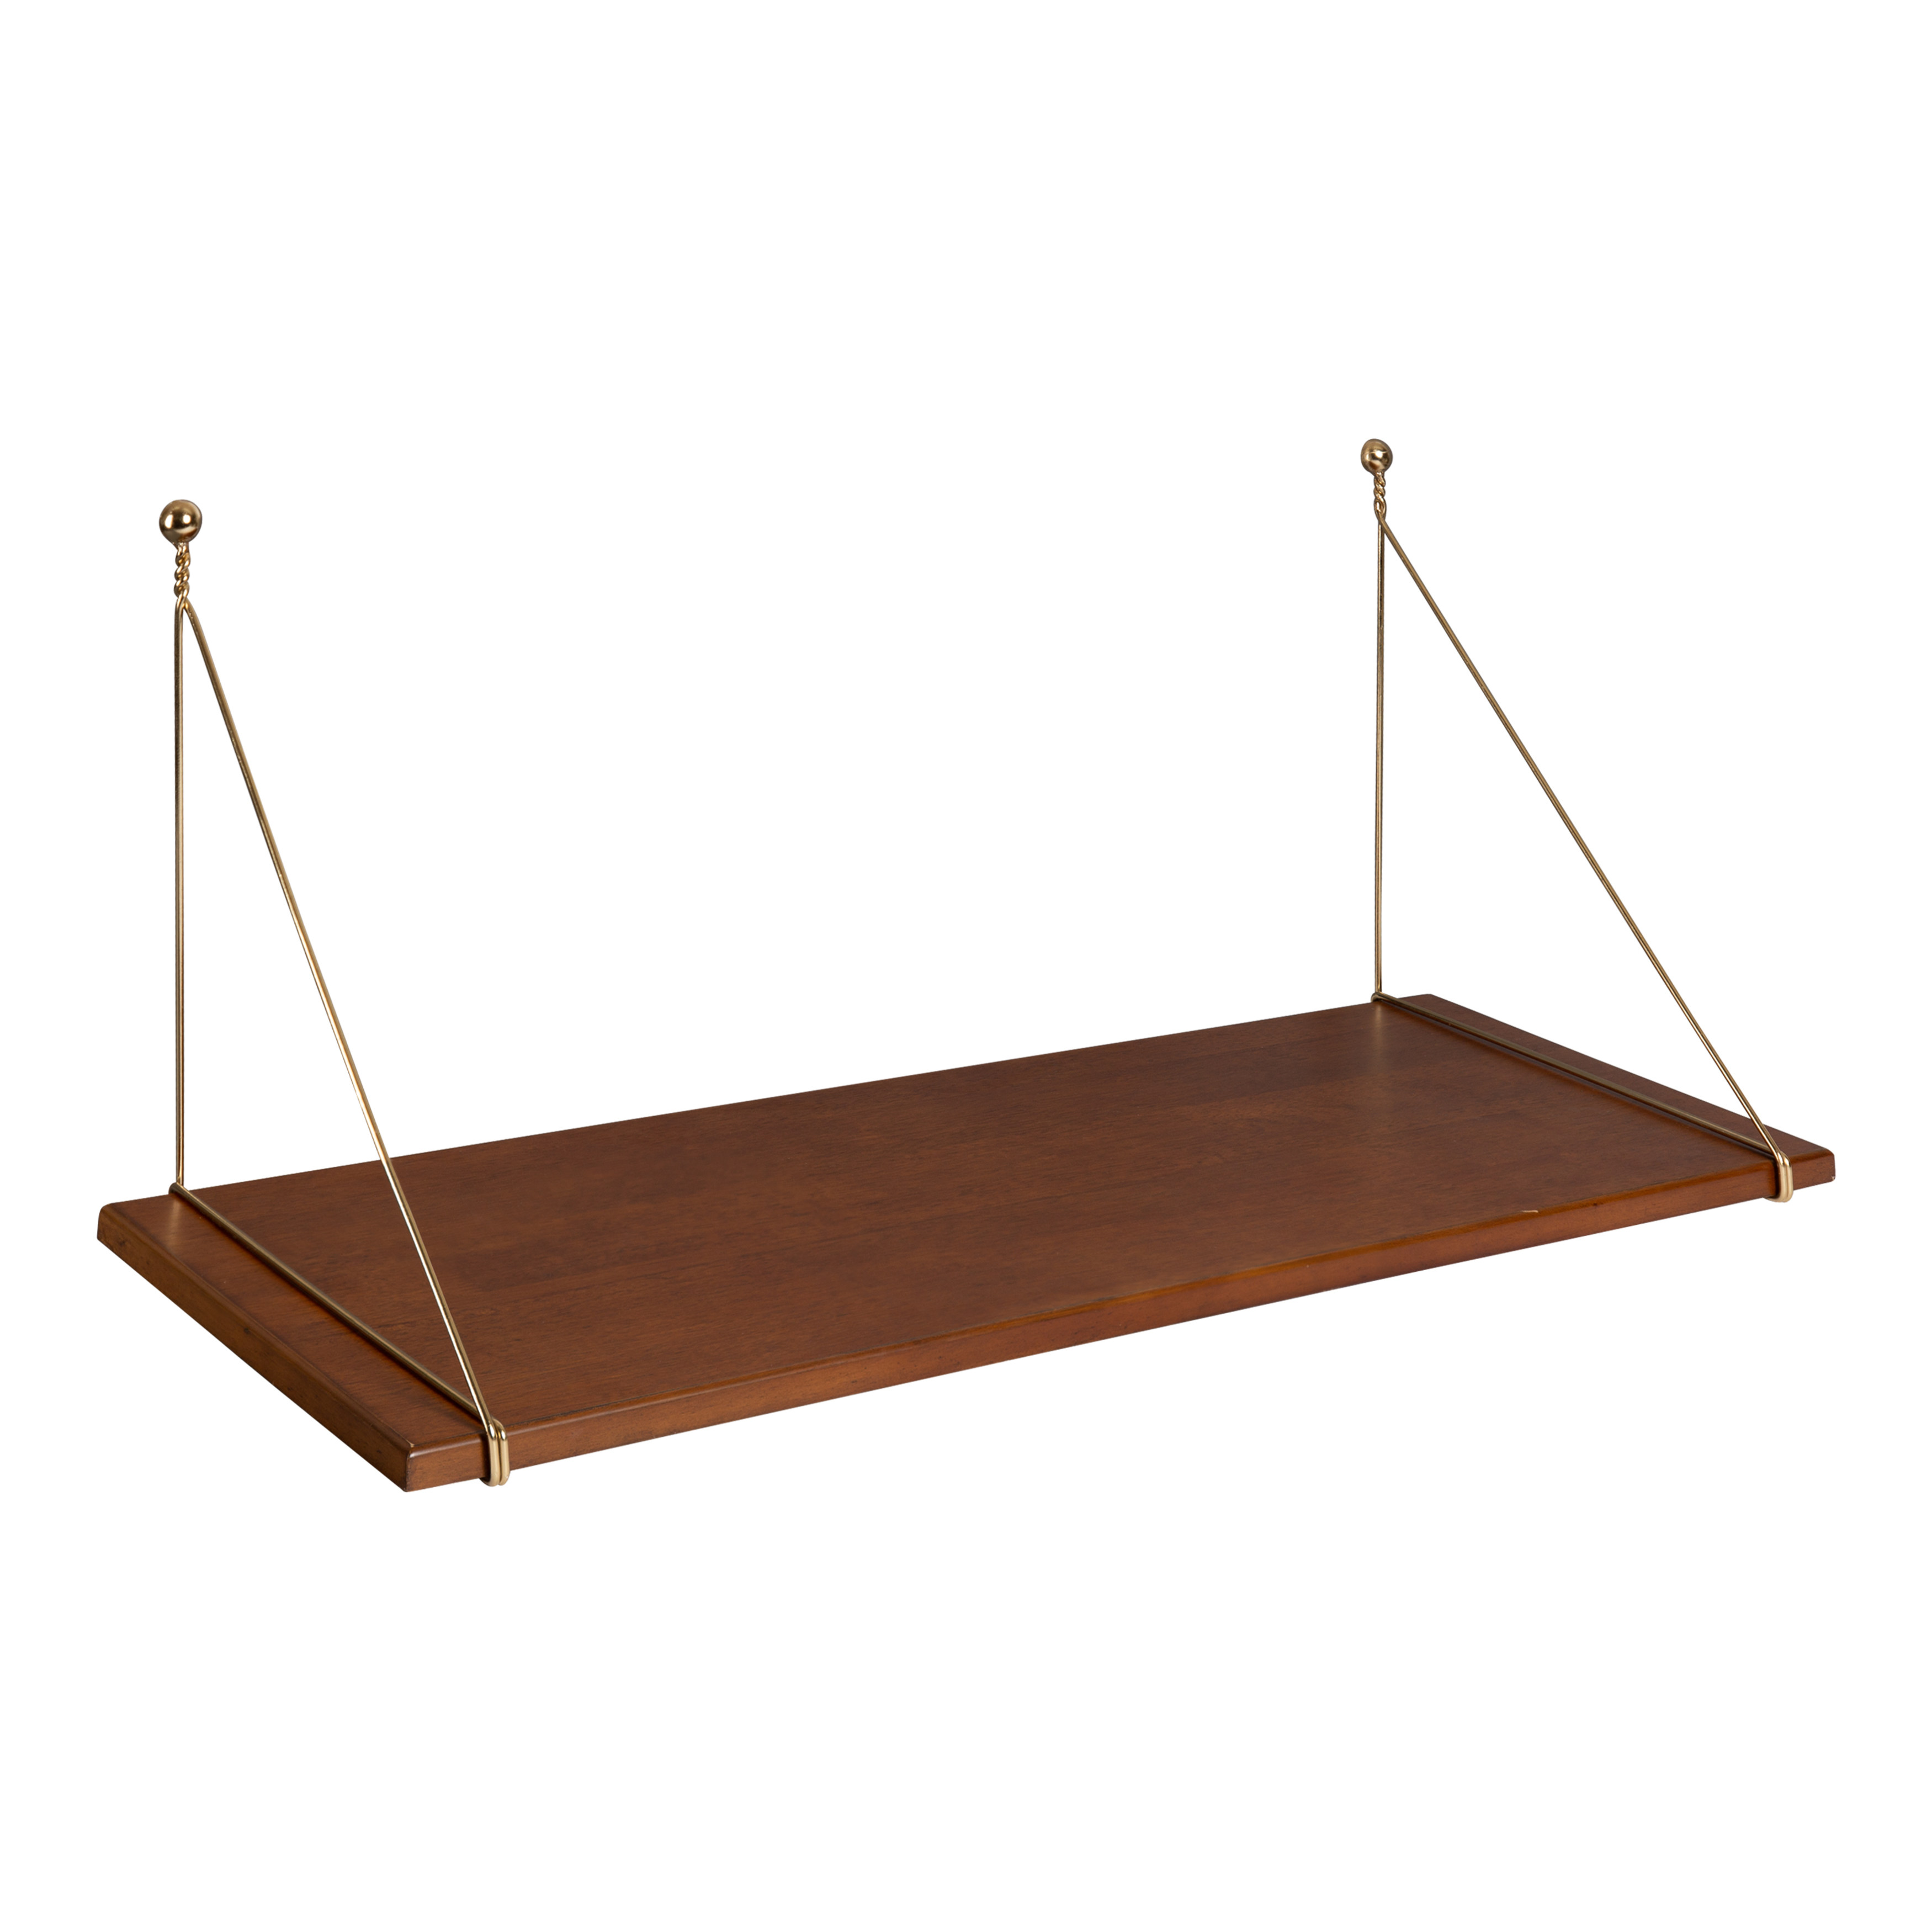 Image of: Kate And Laurel Vista Mid Century Modern Space Saving Wall Mounted Desk Shelf Rich Walnut Brown Finished Wood Top Supported With Decorative Gold Wire Walmart Com Walmart Com